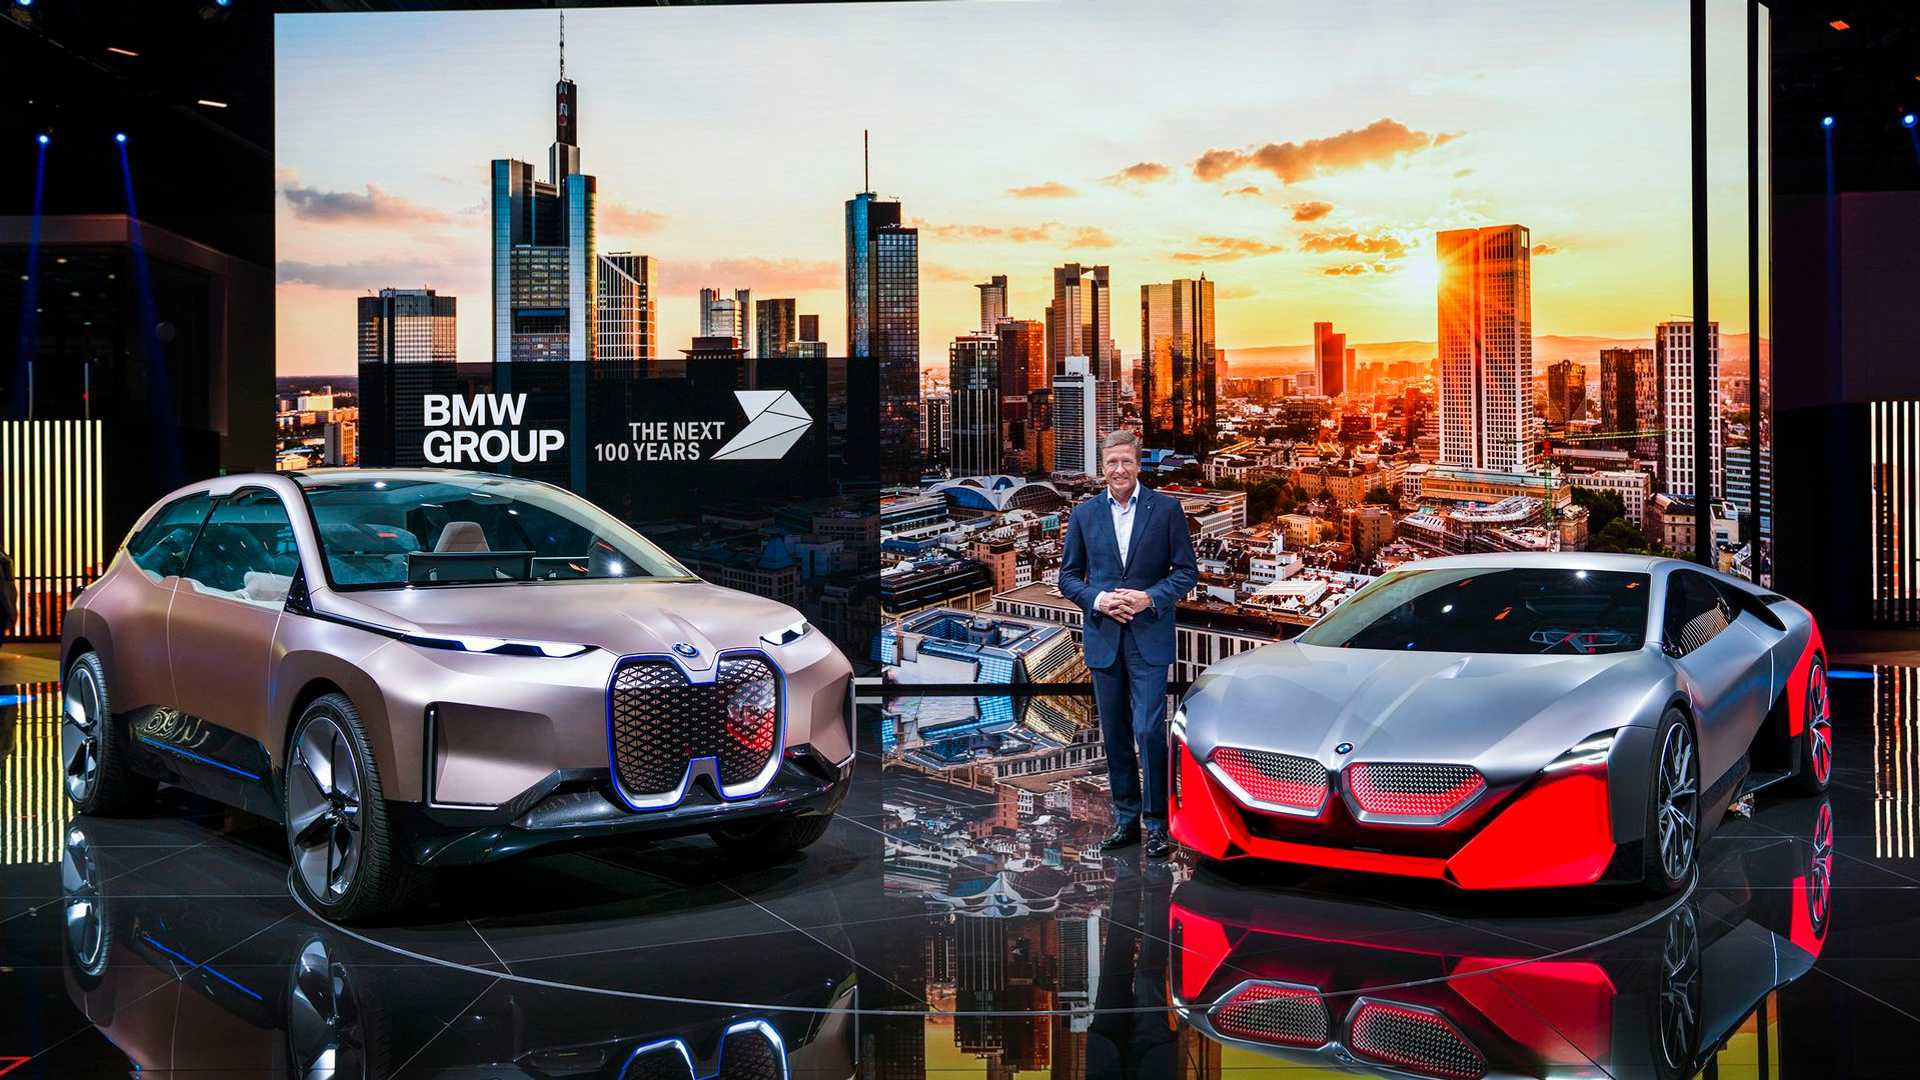 BMW Group To Have One Million EVs & PHEVs On The Roads By 2021